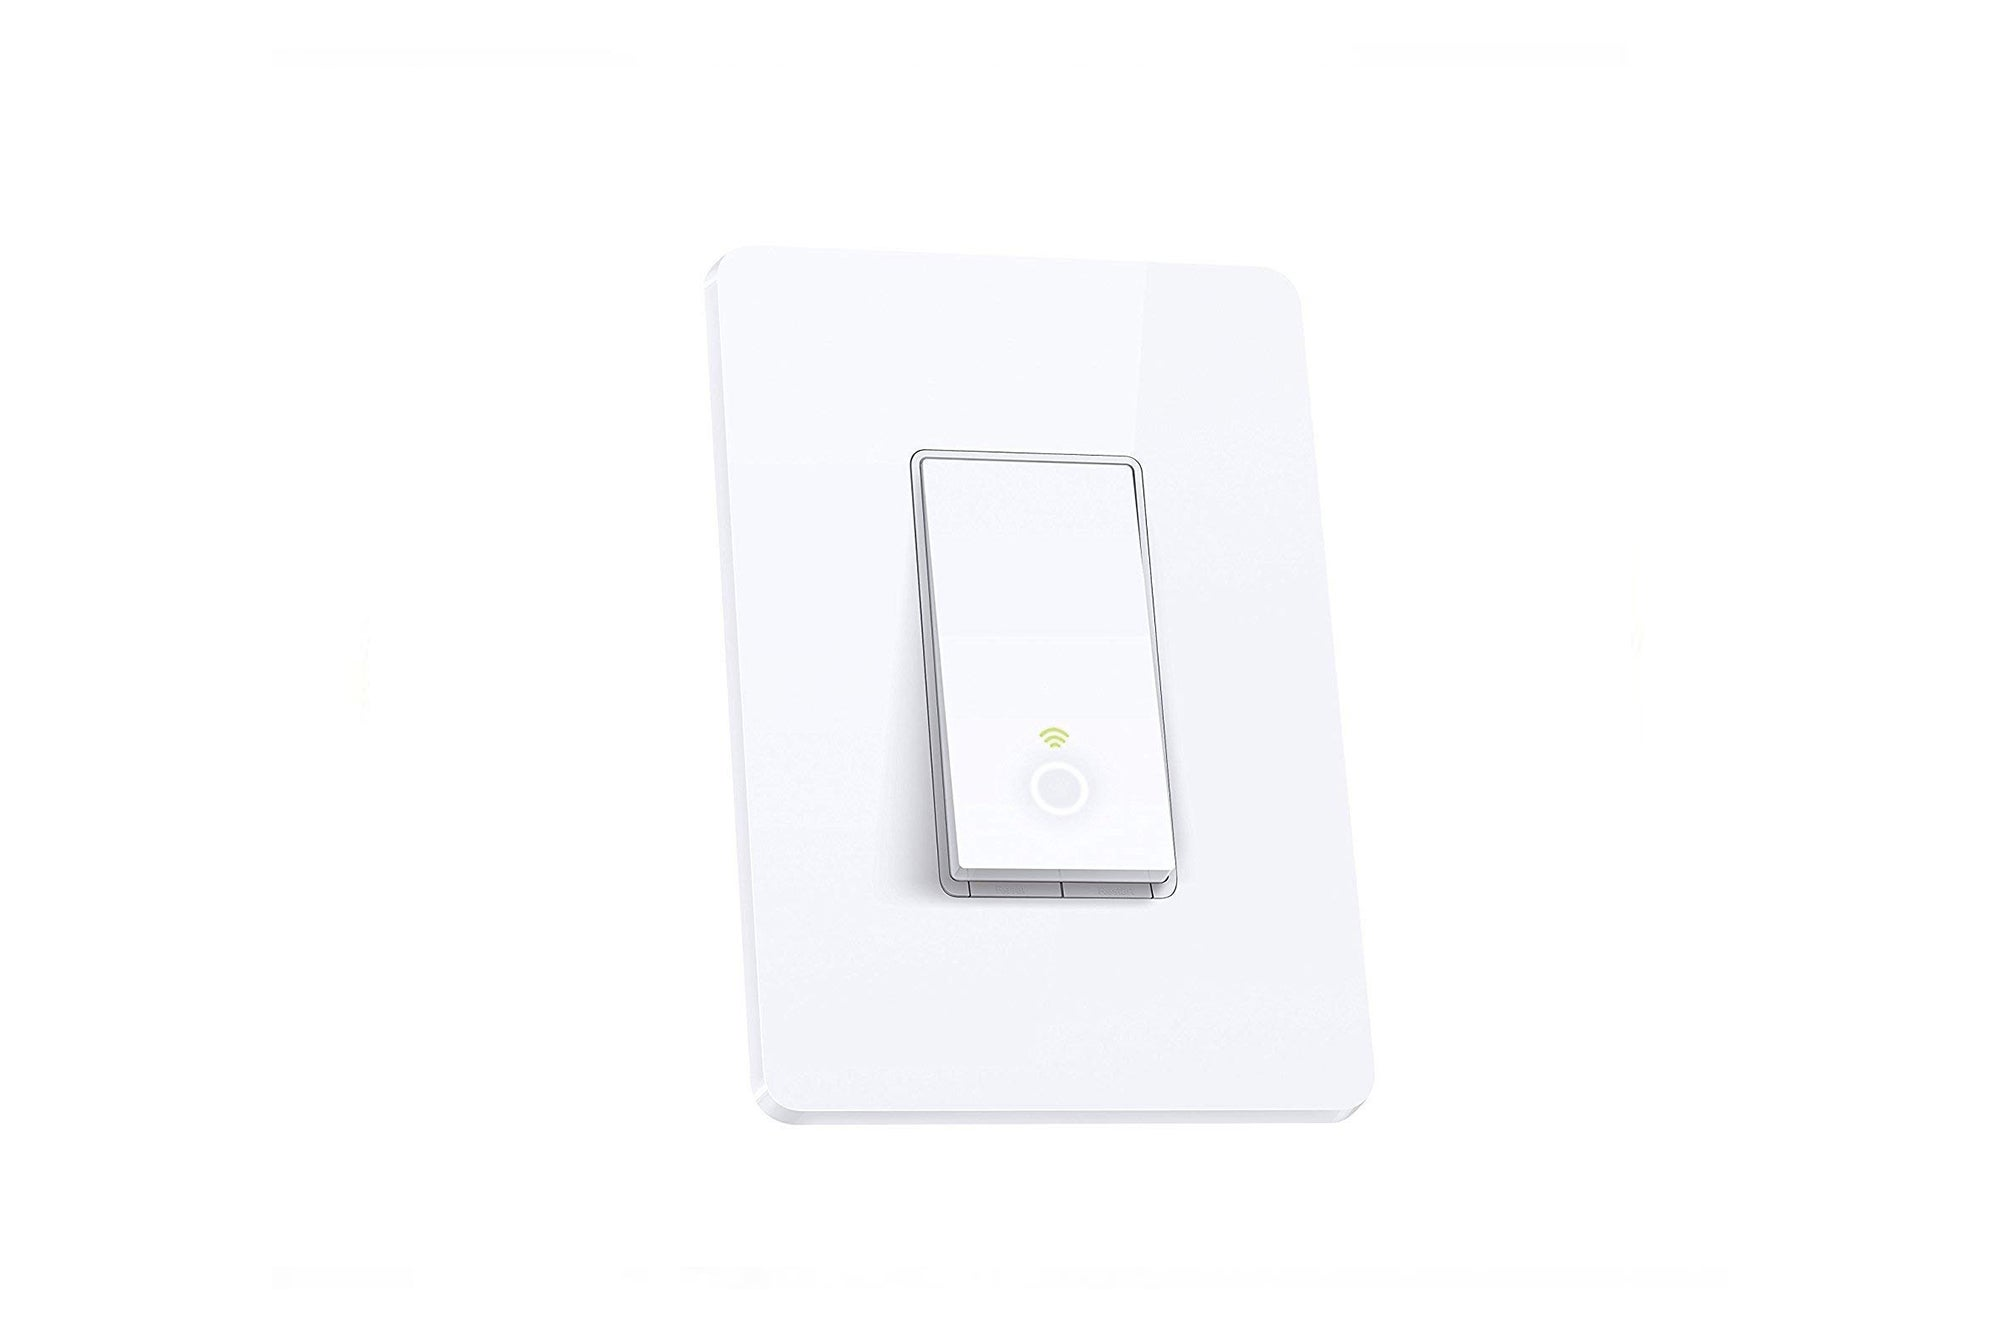 TP-Link Smart Wi-Fi Light Switch.